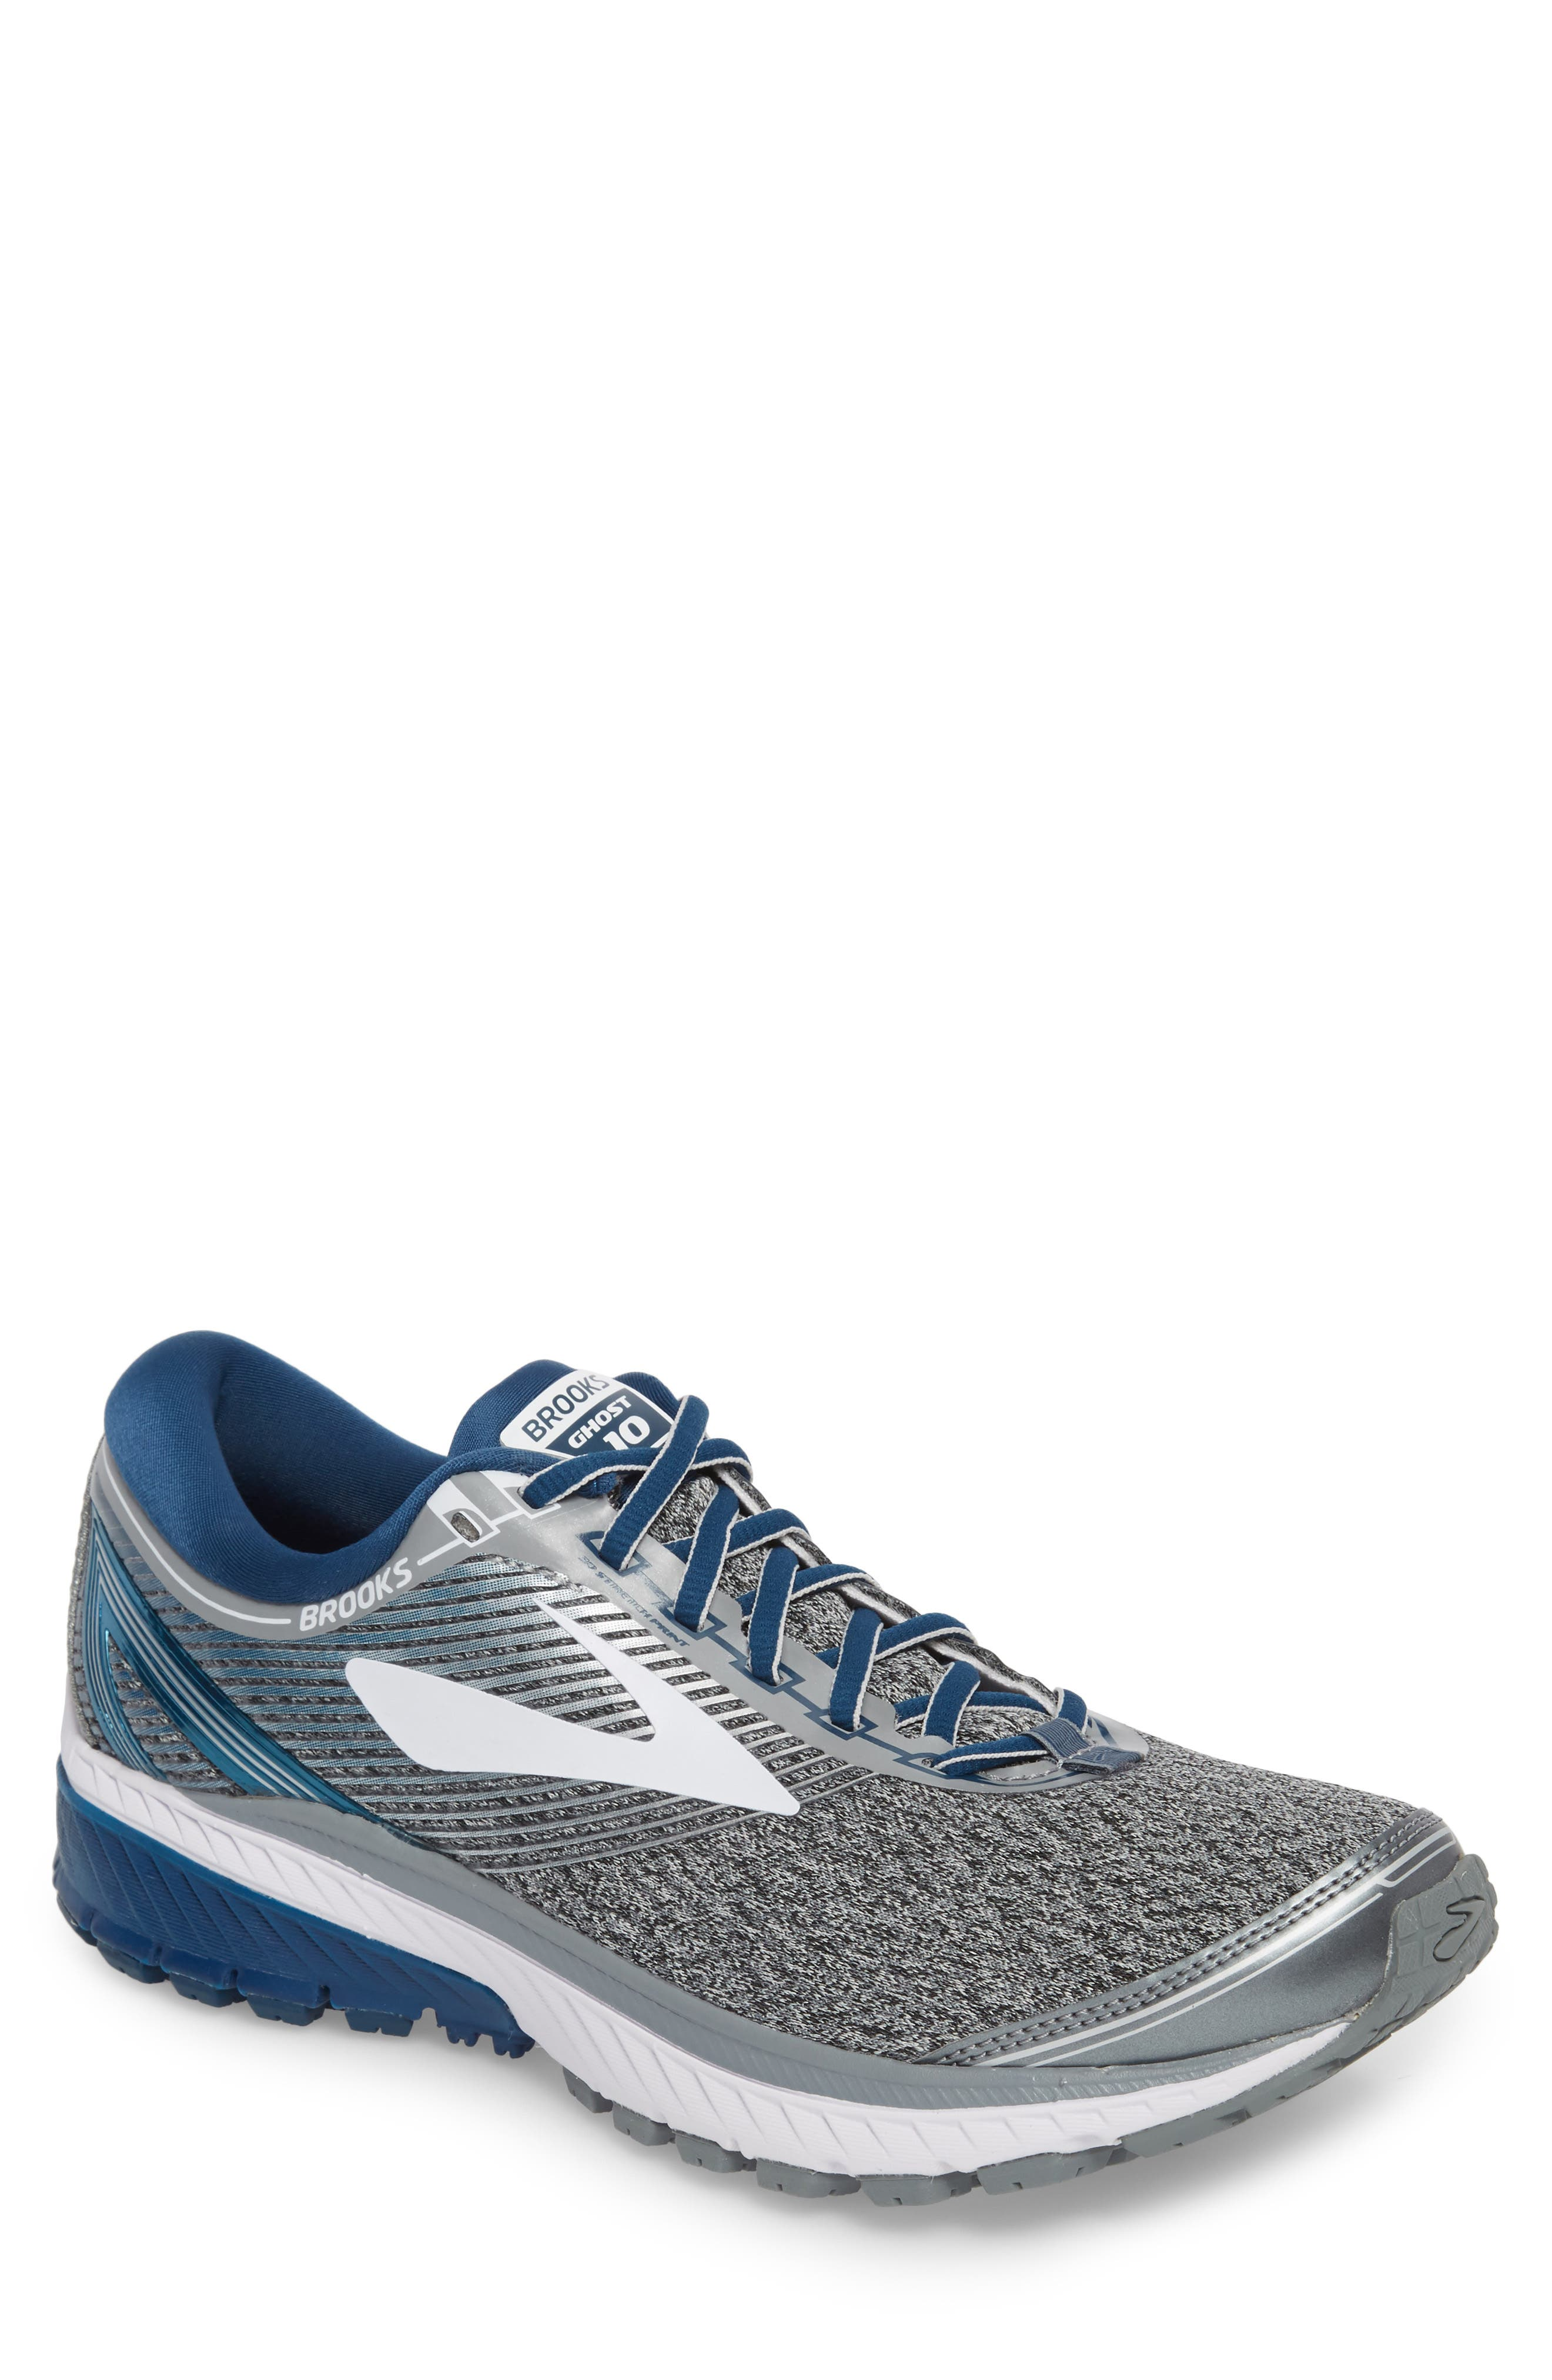 Alternate Image 1 Selected - Brooks Ghost 10 Running Shoe (Men)